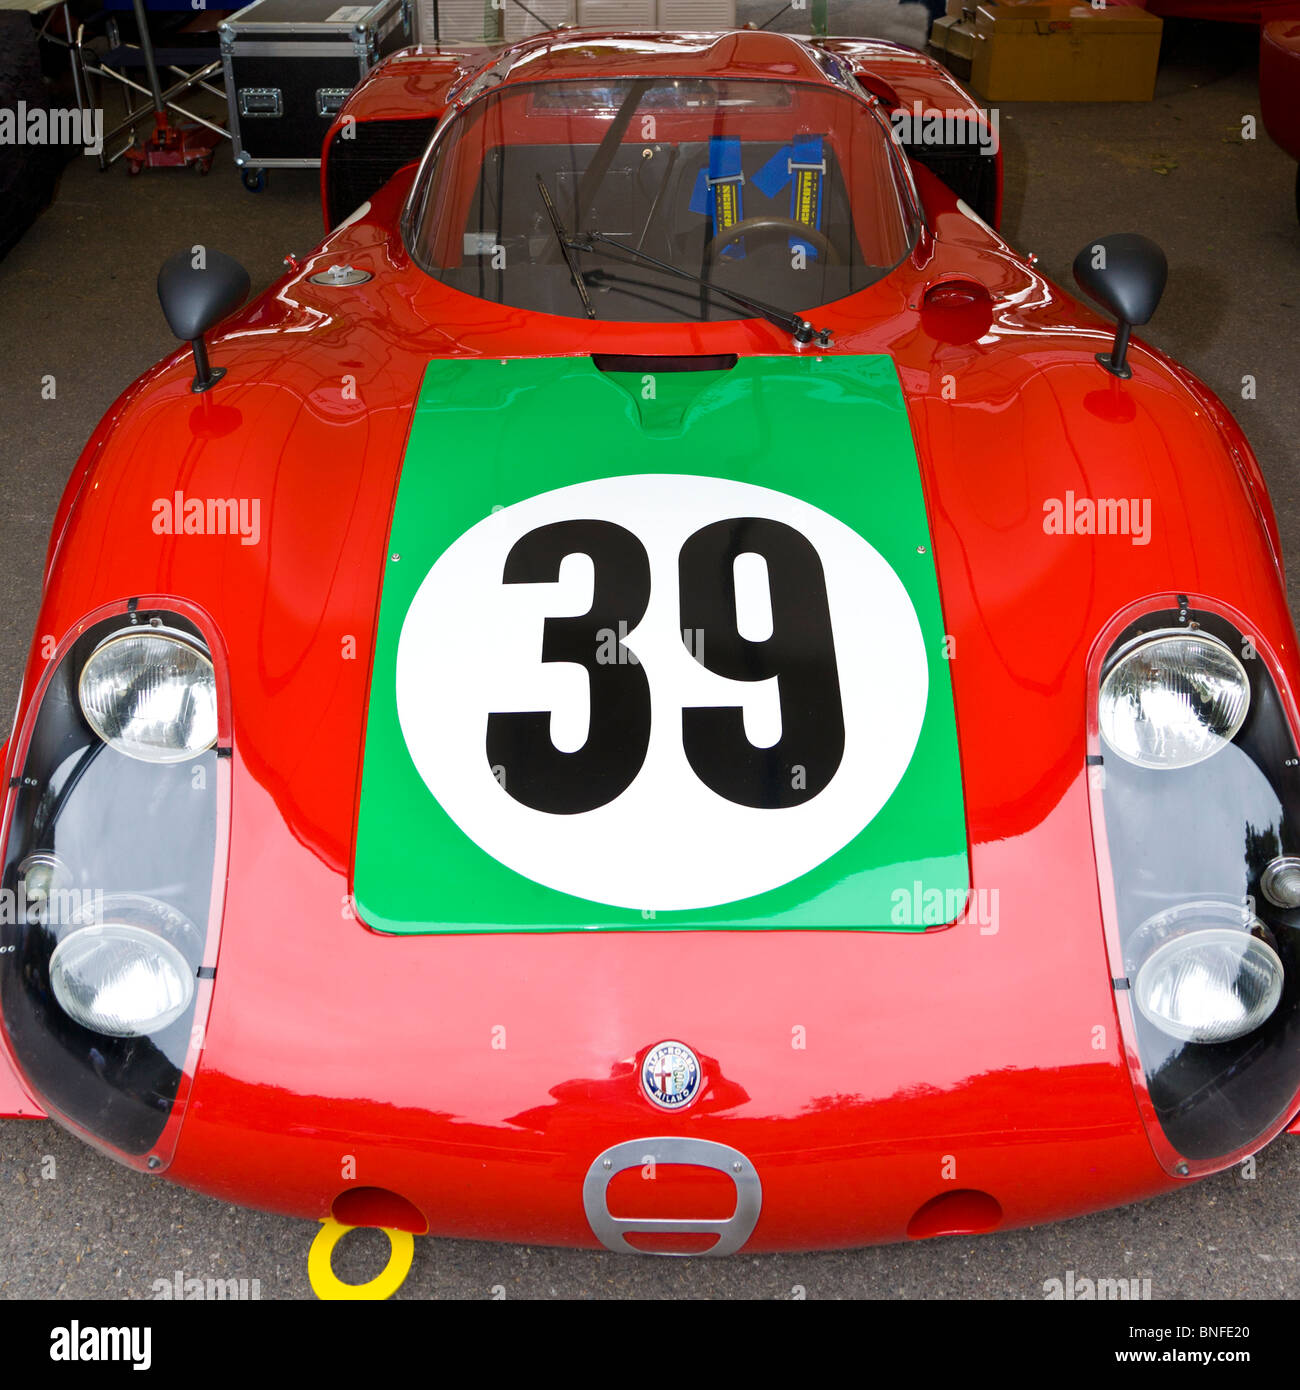 1968 alfa romeo tipo 33 2 le mans in the paddock at the 2010 stock photo 30458456 alamy. Black Bedroom Furniture Sets. Home Design Ideas